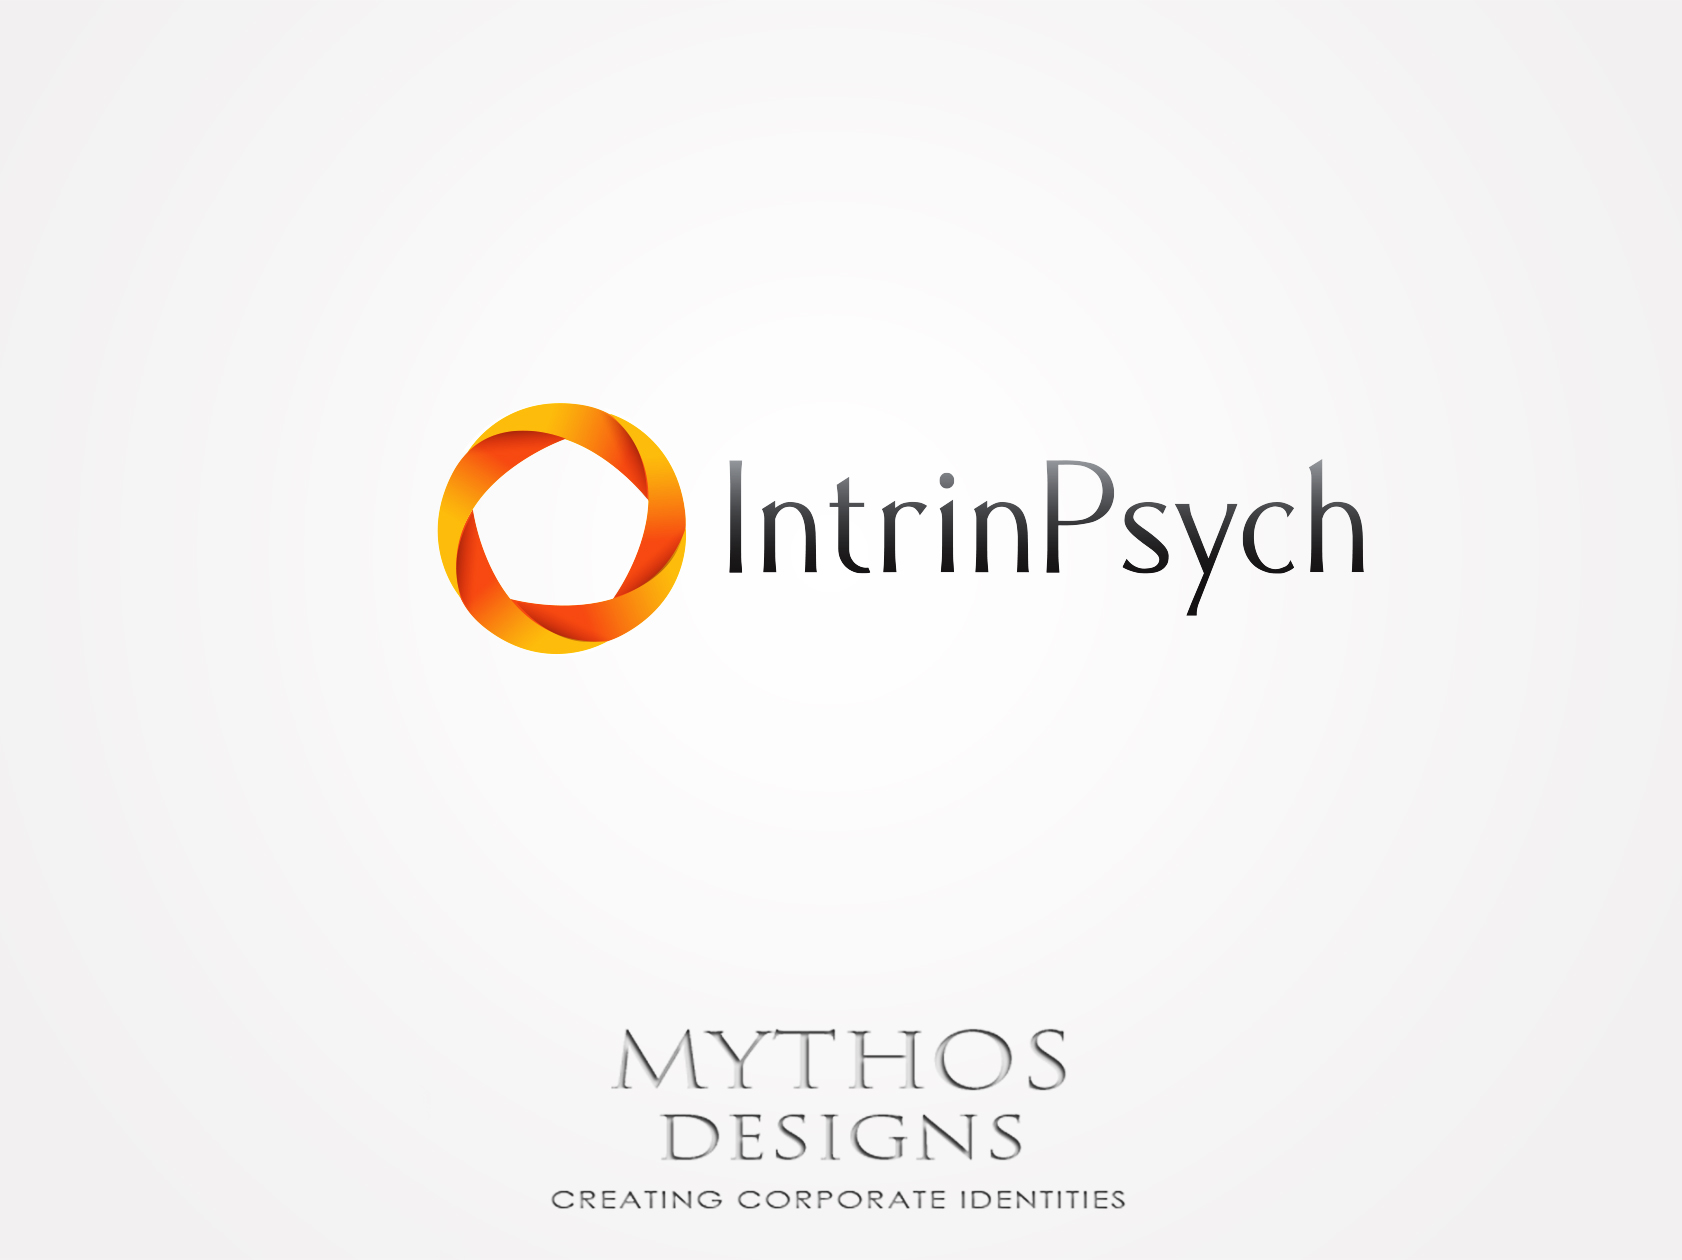 Logo Design by Mythos Designs - Entry No. 44 in the Logo Design Contest New Logo Design for IntrinPsych.